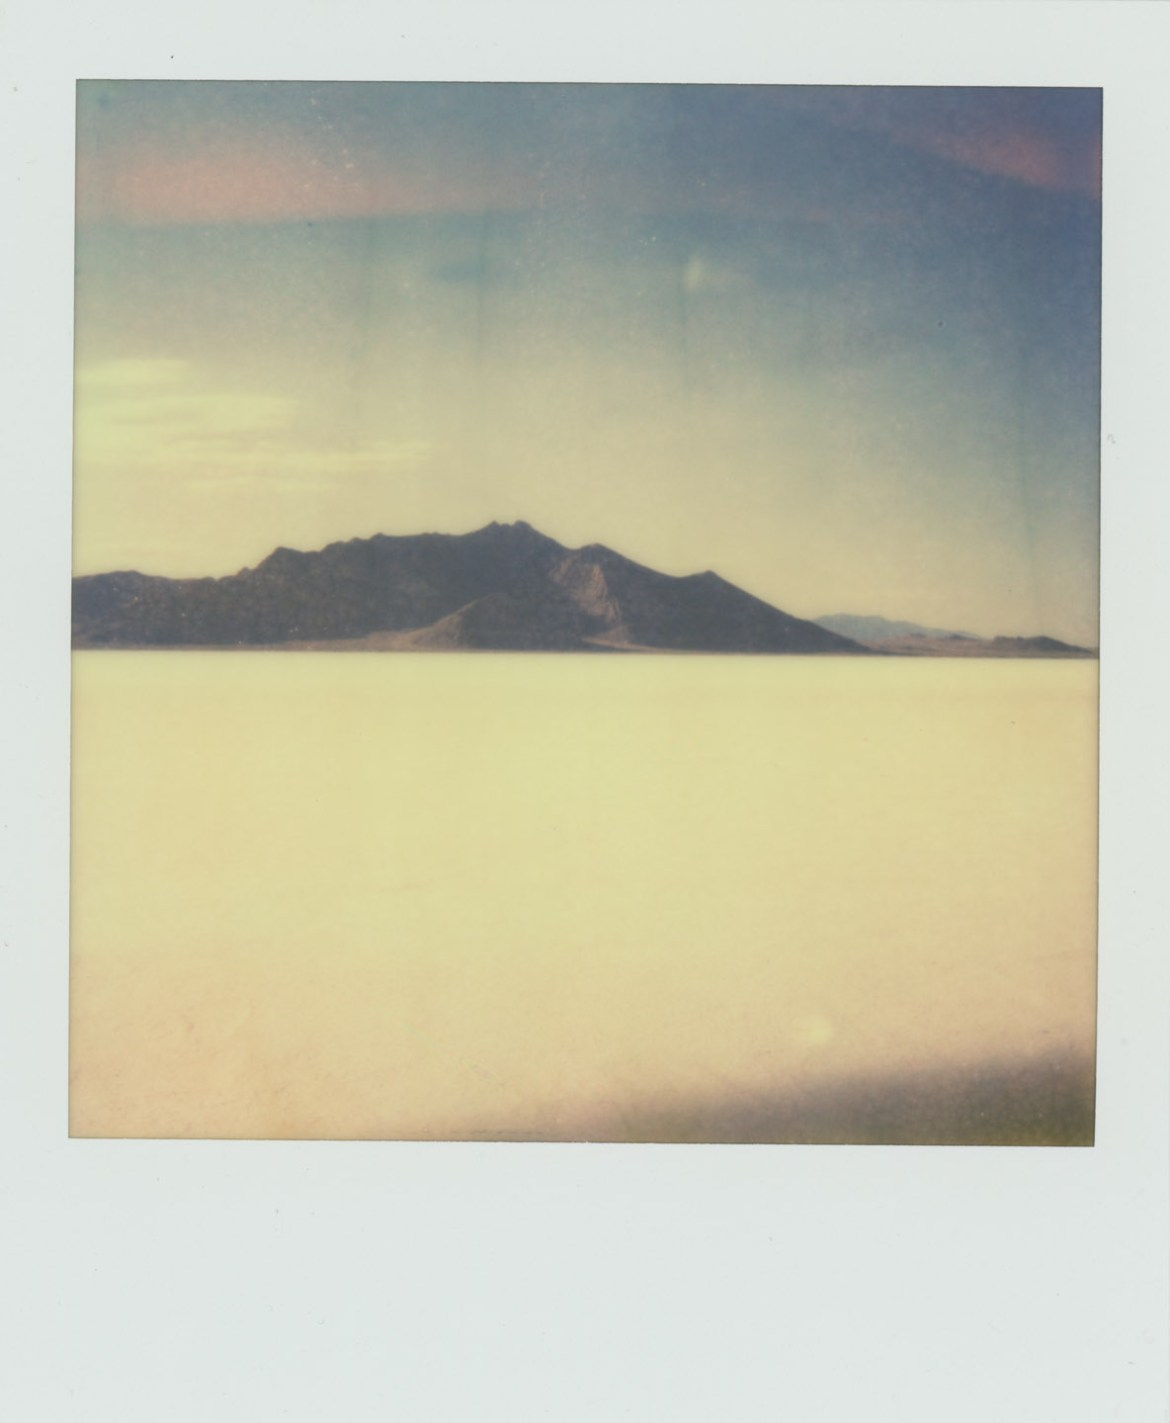 A sunny day on the Bonneville Salt Flats. Shot on instant film from Impossible Project